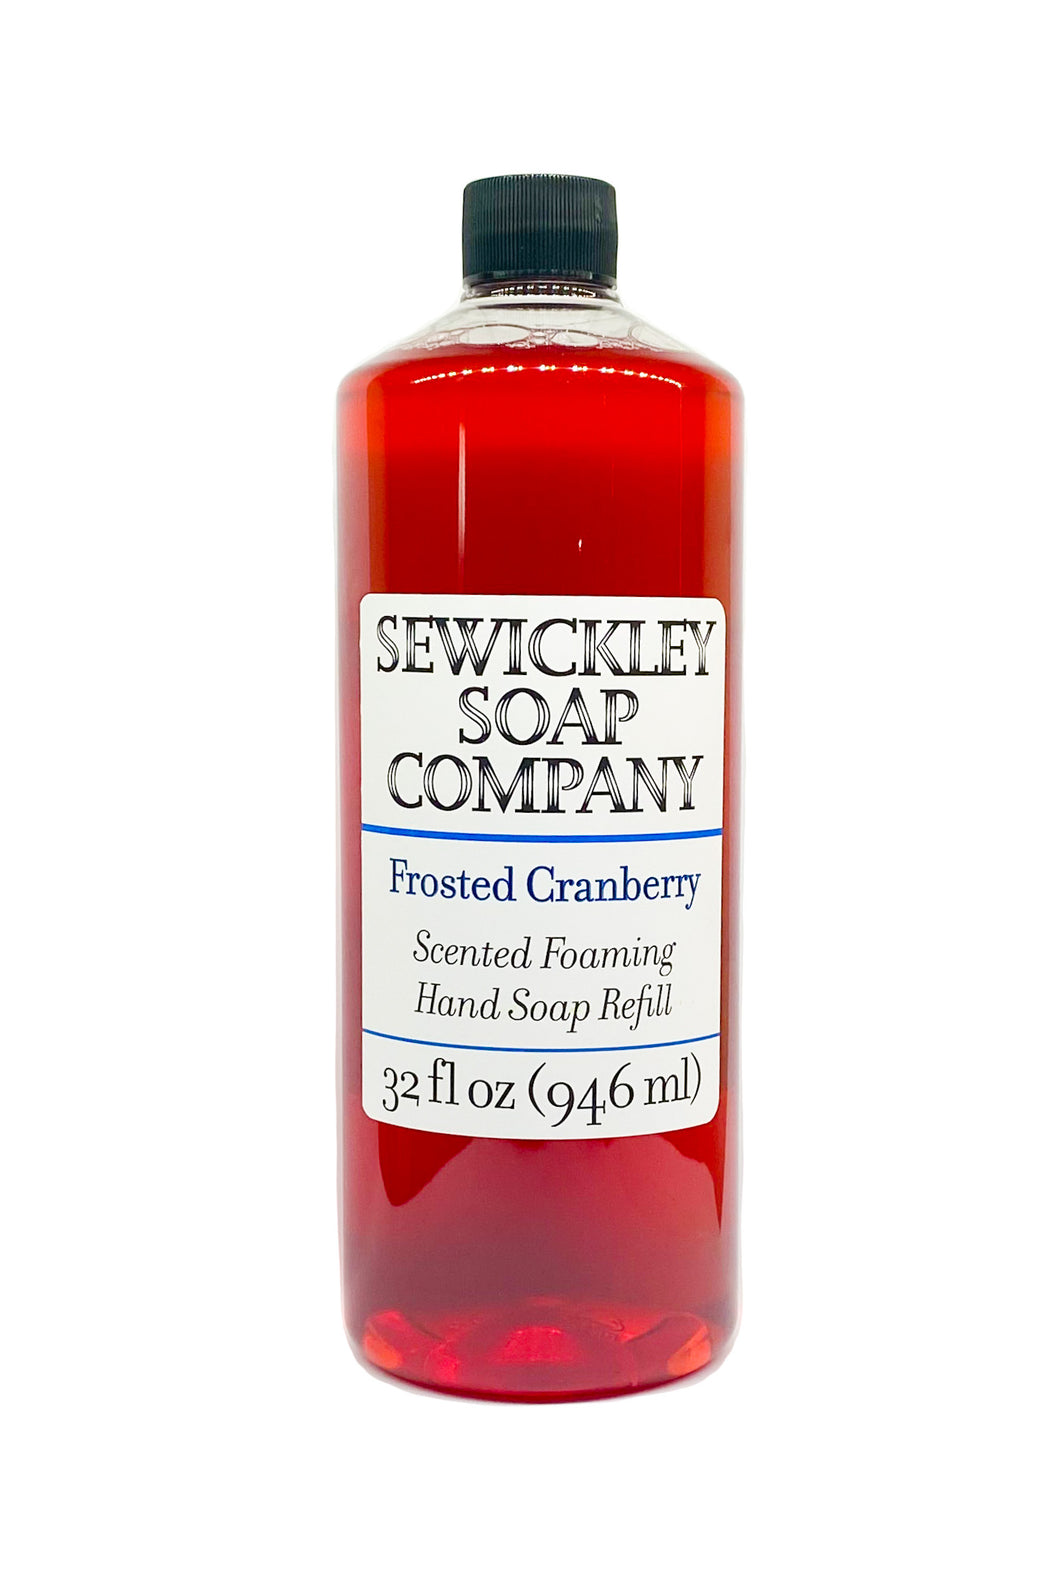 Frosted Cranberry Scented Foaming Hand Soap - 32oz Refill